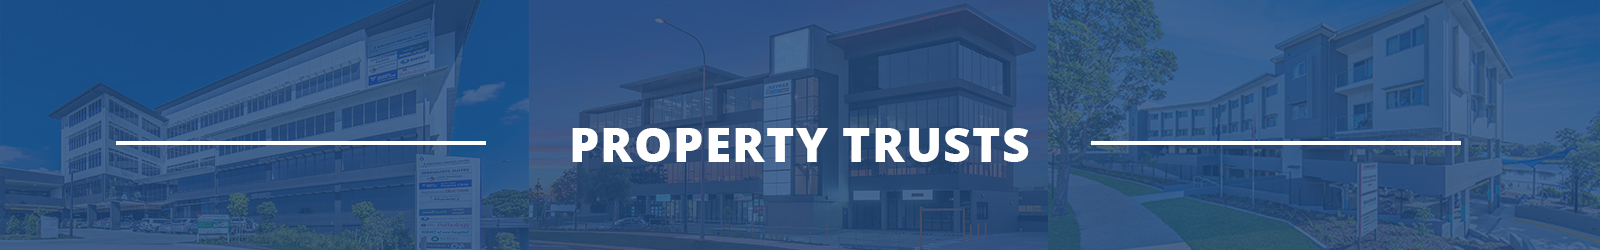 Property-Trusts-Banner